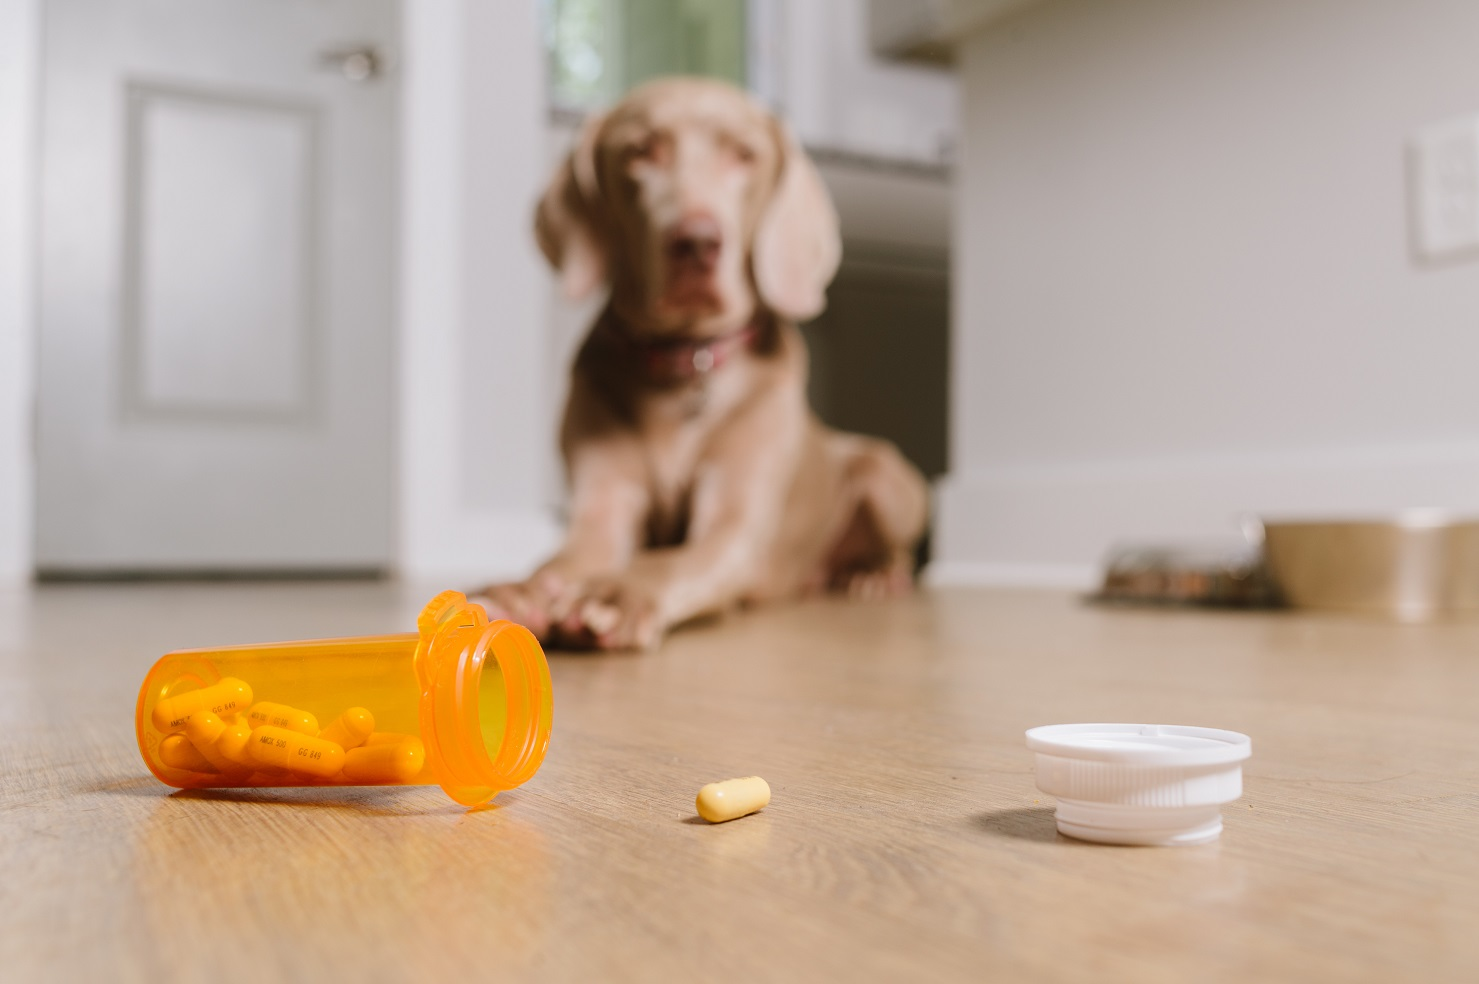 Ivermectin, Pregnancy & COVID-19: Promising but Don't Take Your Pet's Parasite Medicine